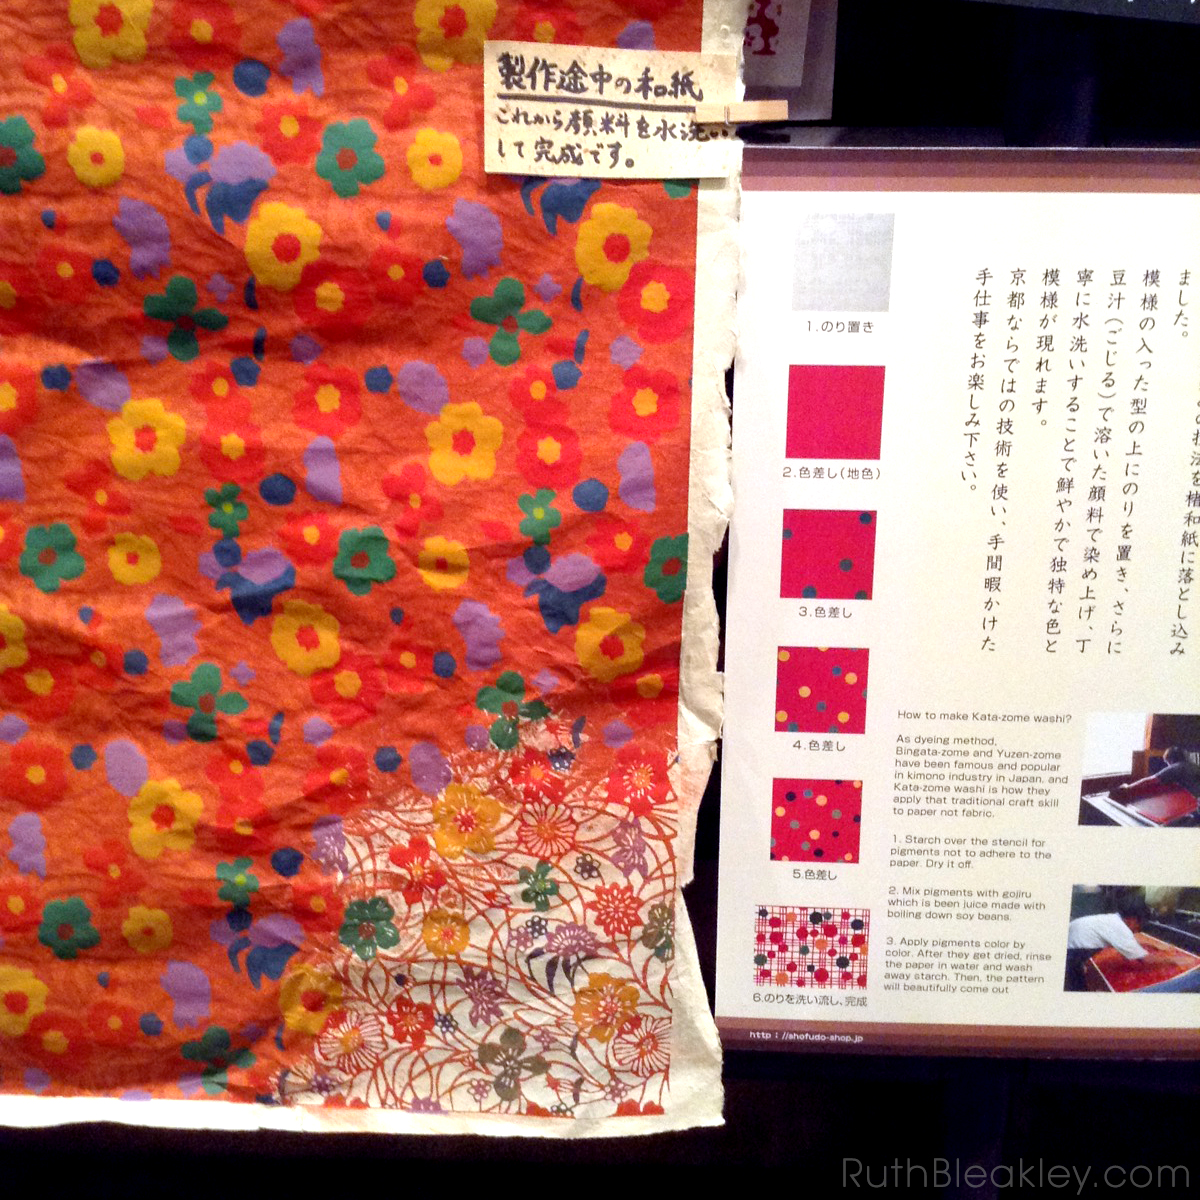 Ruth visits Suzuki Shofudo in Kyoto Japan for Katazome Washi Paper - how Katazome is made